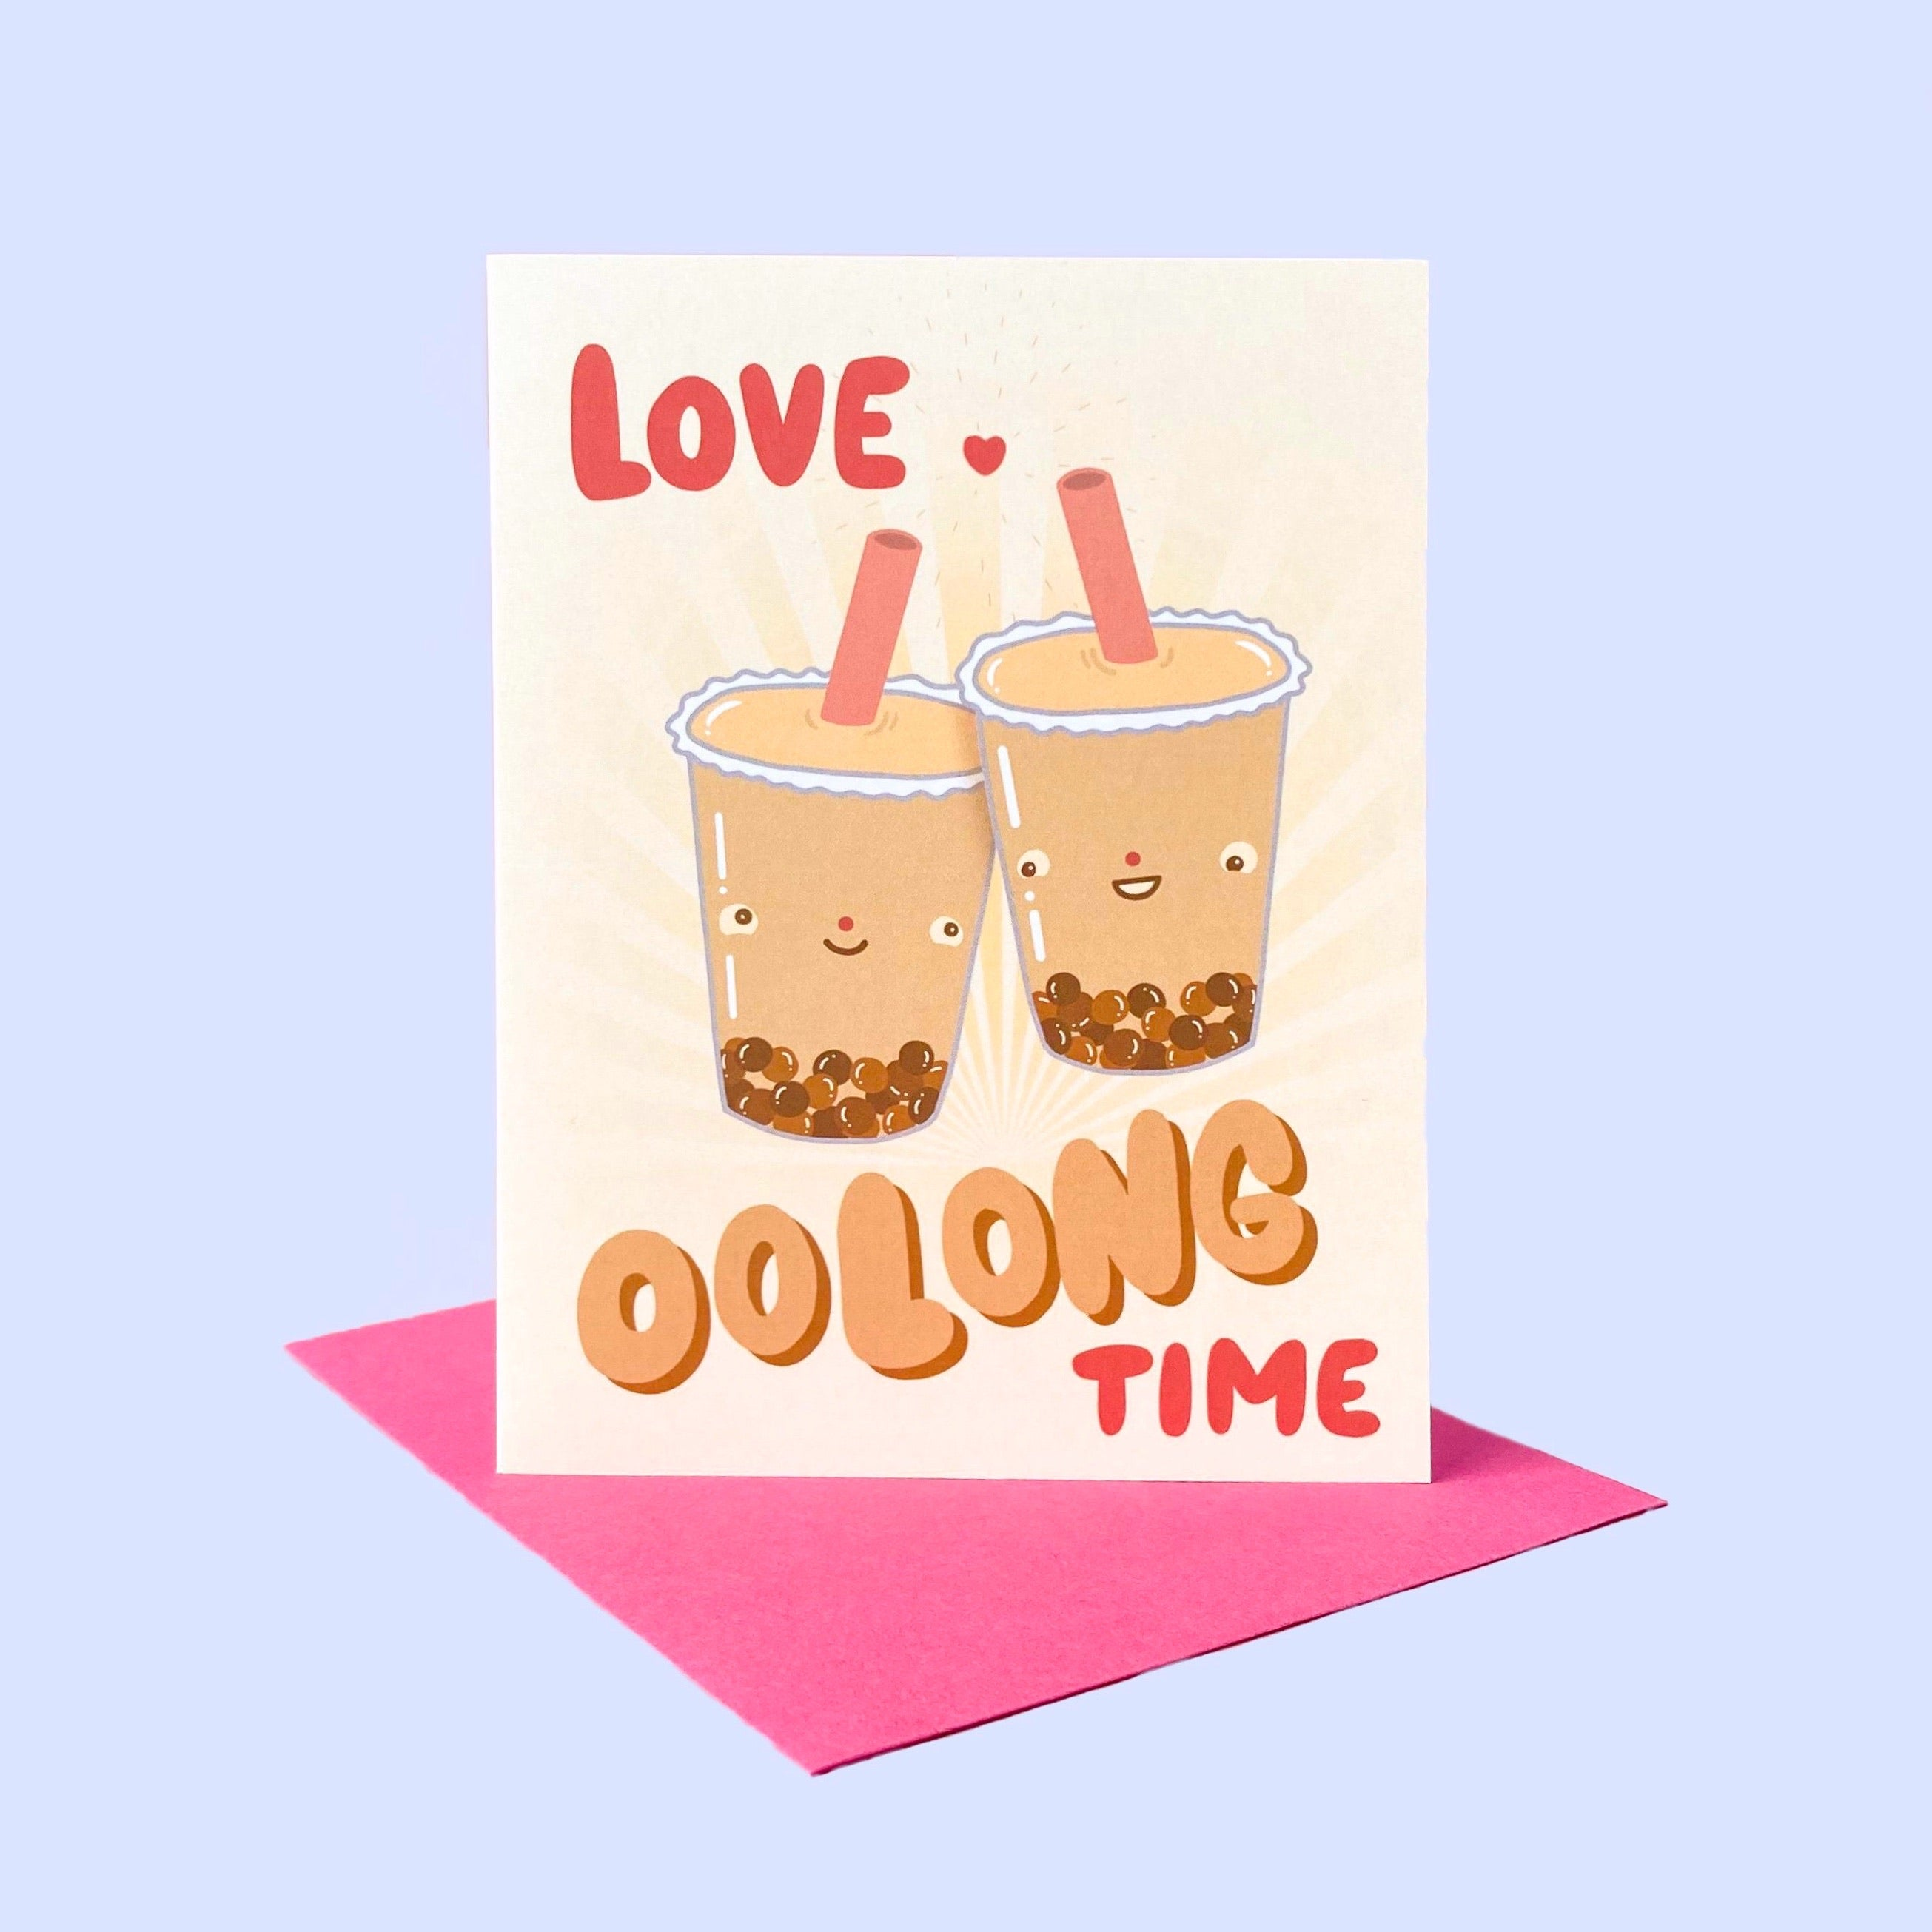 Love Oolong Time Card